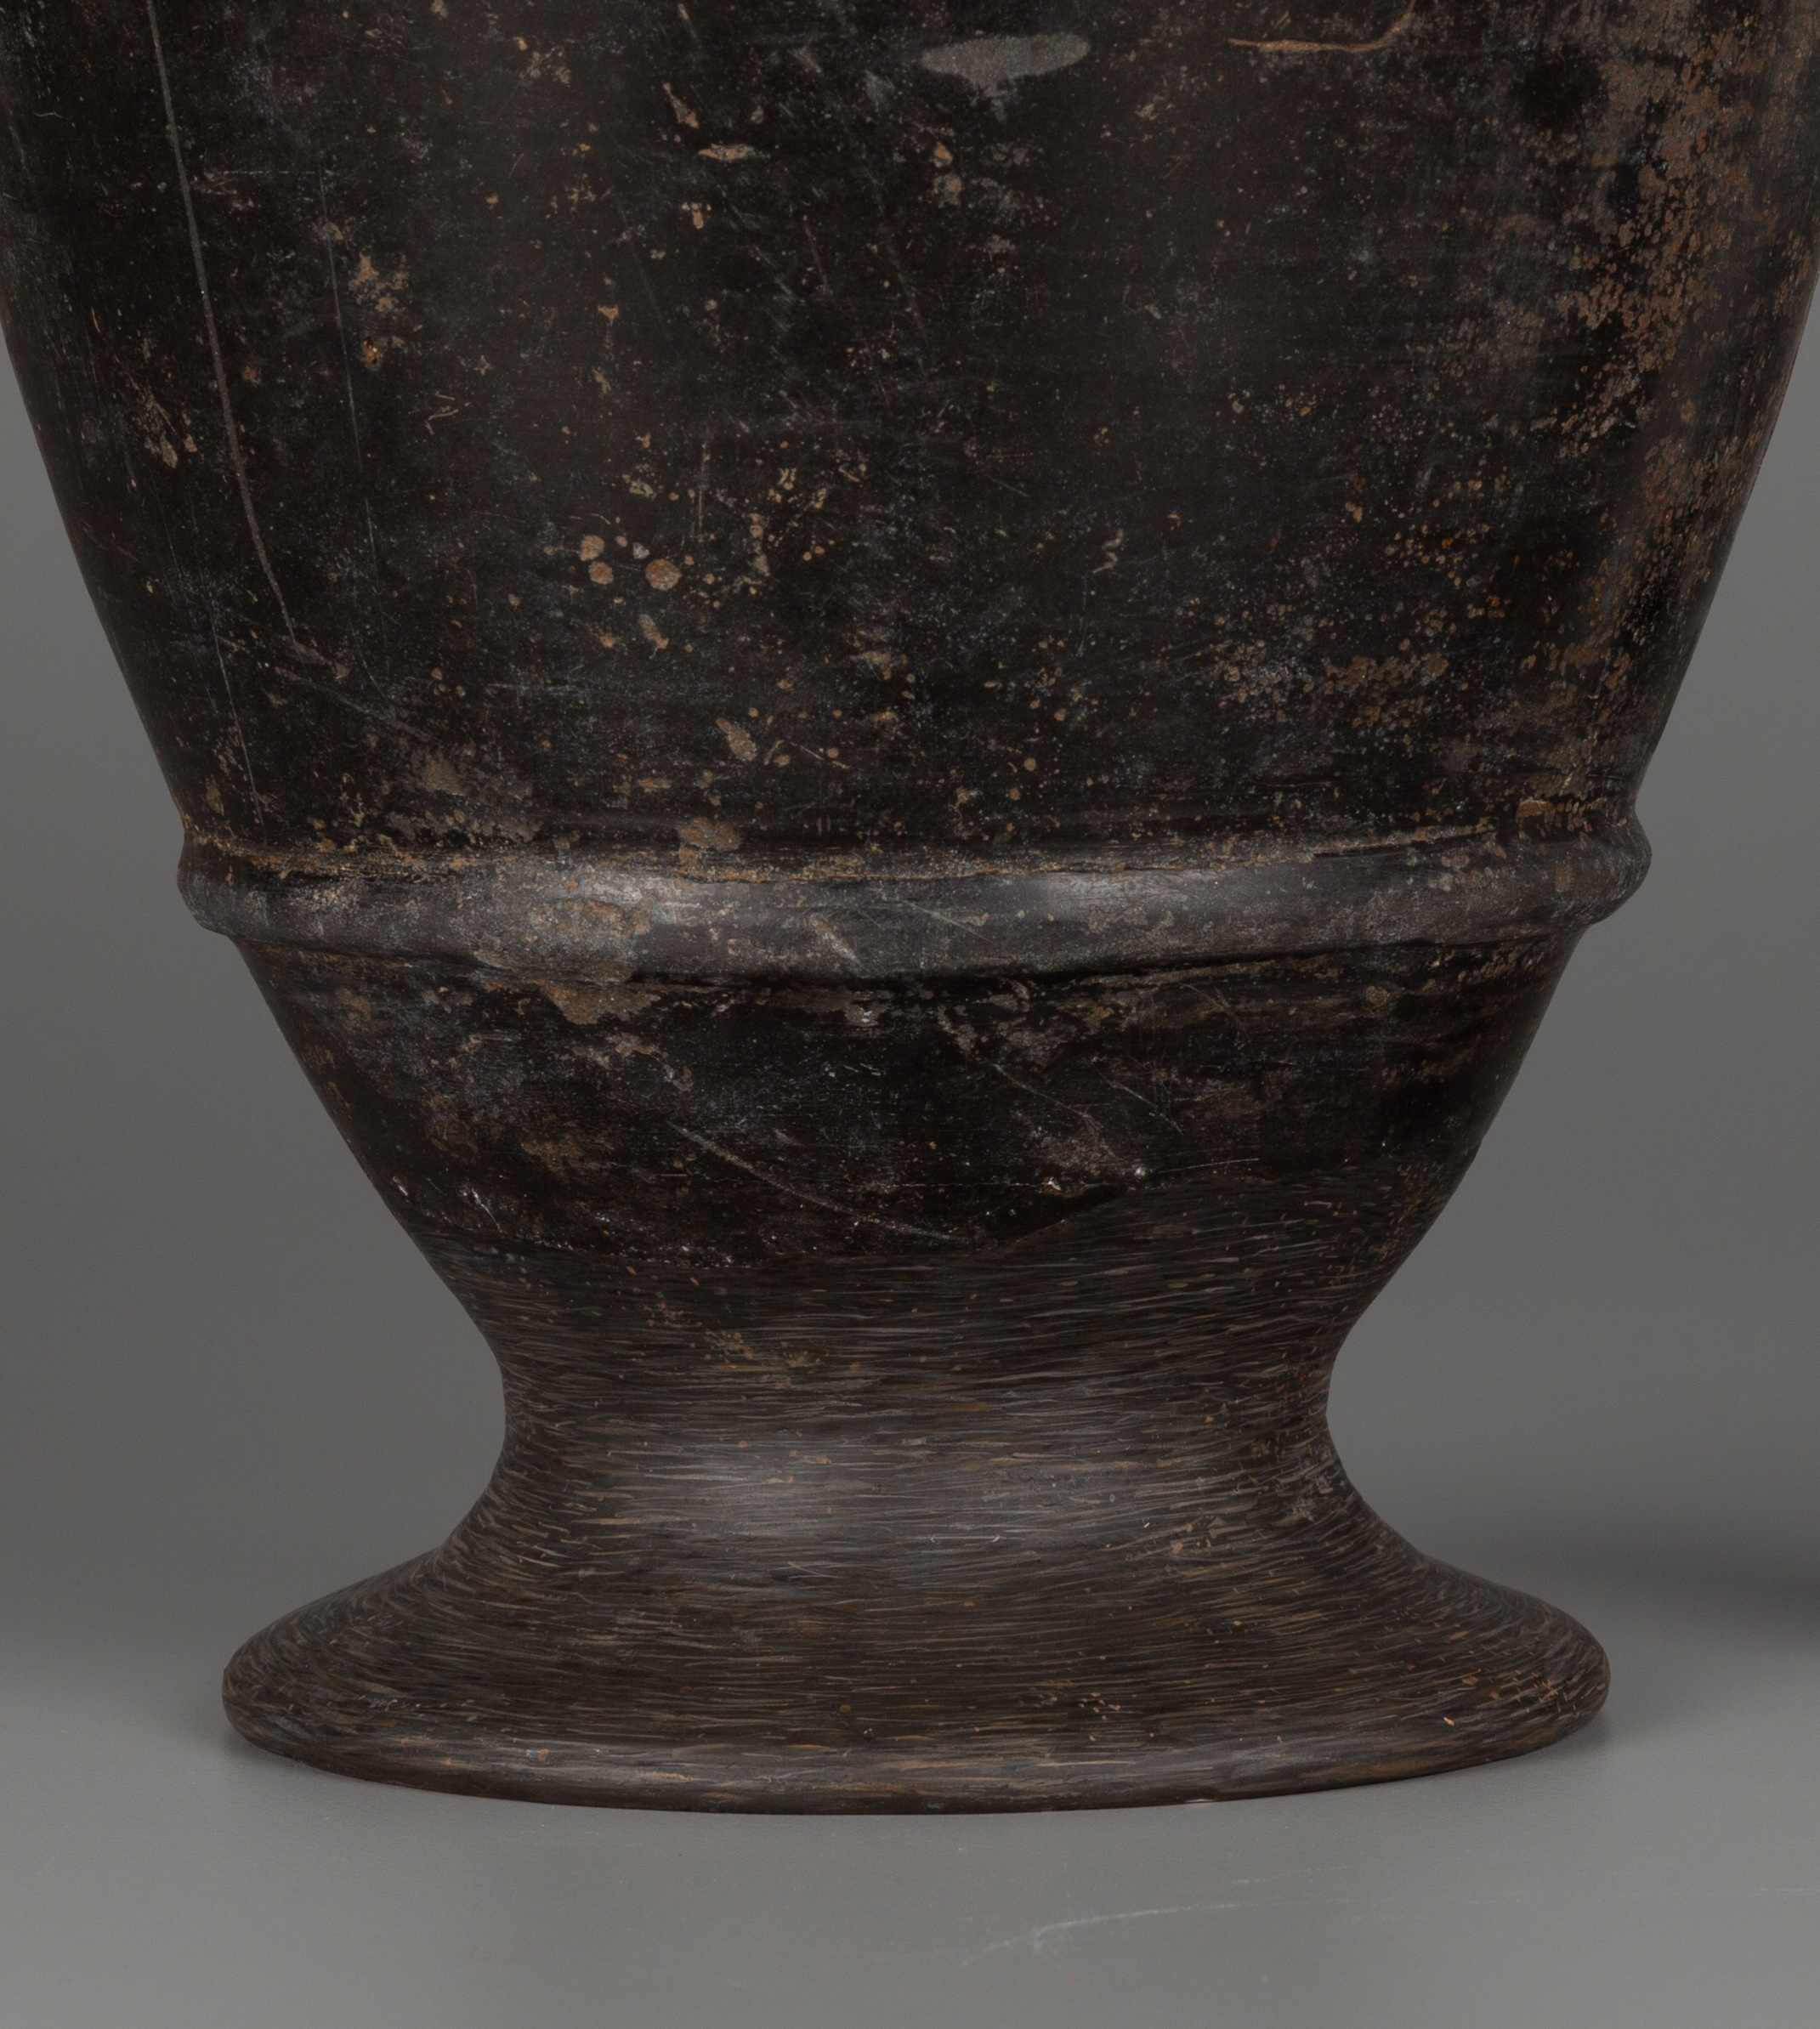 This photograph shows the lower portion of a vessel. The base is covered in short horizontal paint strokes, distinguishing it from the uniform dark brown-black ceramic above.